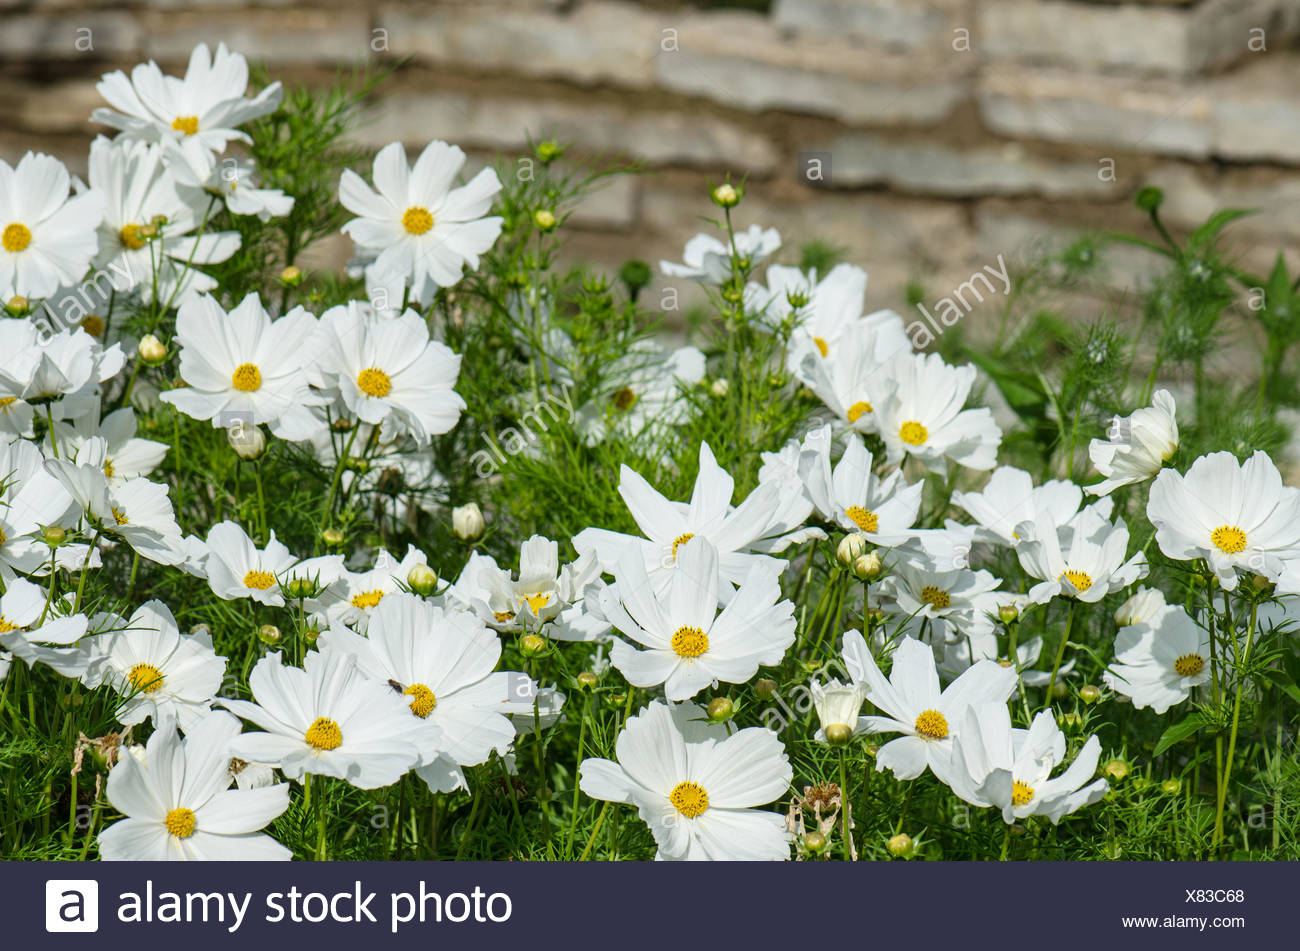 White flower on a bed with other plants close up stock photo white flower on a bed with other plants close up mightylinksfo